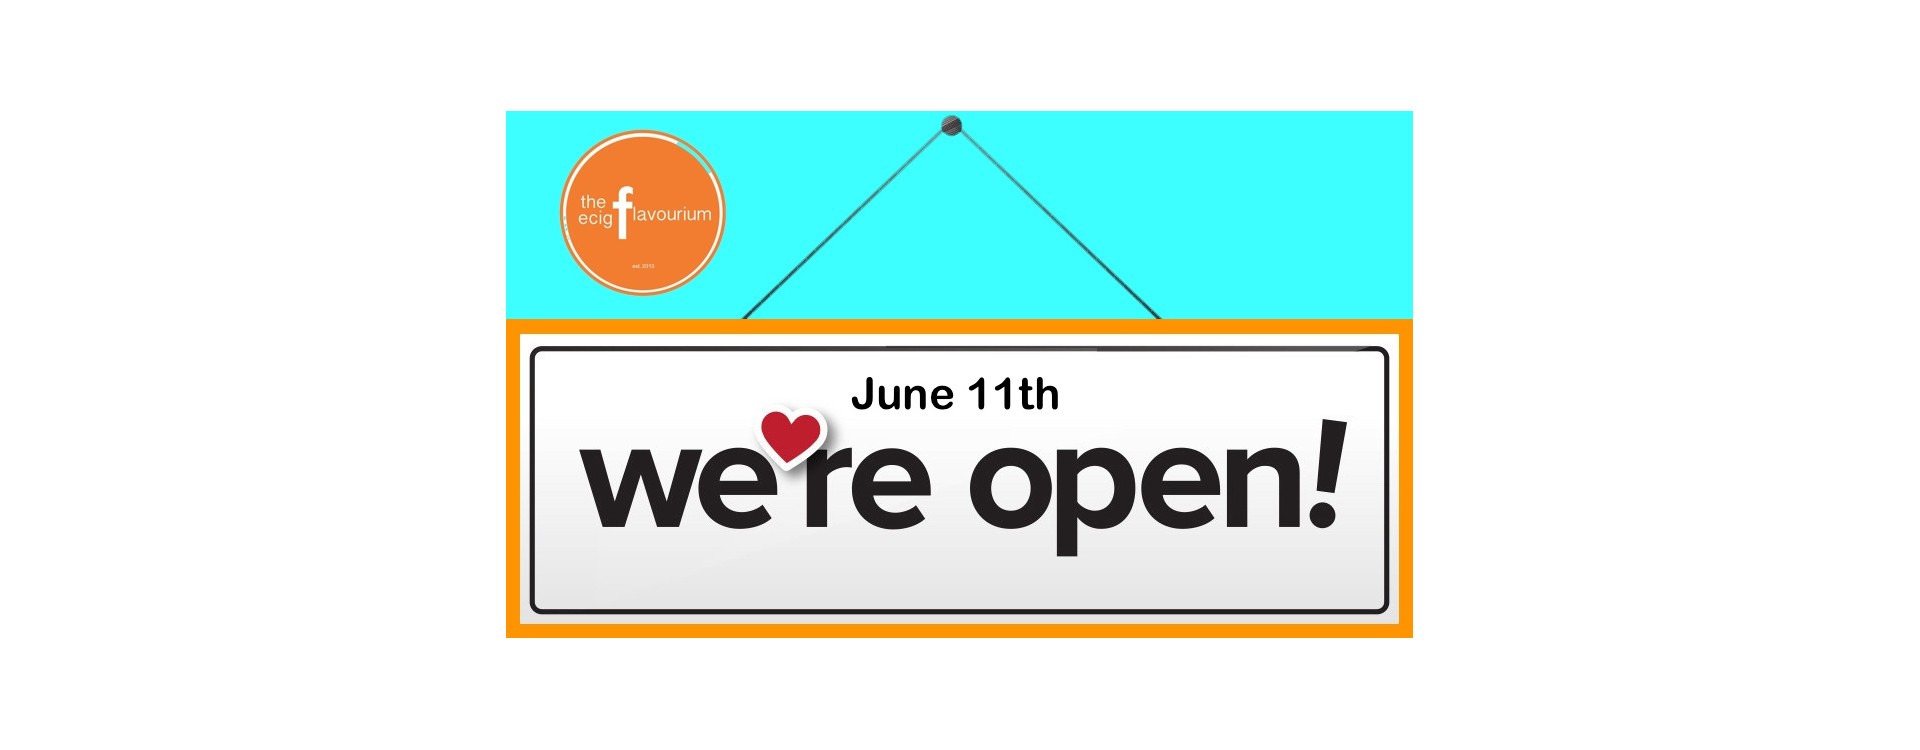 WE ARE OPEN FOR IN-STORE SHOPPING, CURBSIDE PICKUP & $5 SAME DAY LOCAL DELIVERY & CANADA POST DELIVERY INSTRUCTIONS EFFECTIVE JUNE 11, 2021 UNTIL FURTHER NOTICE